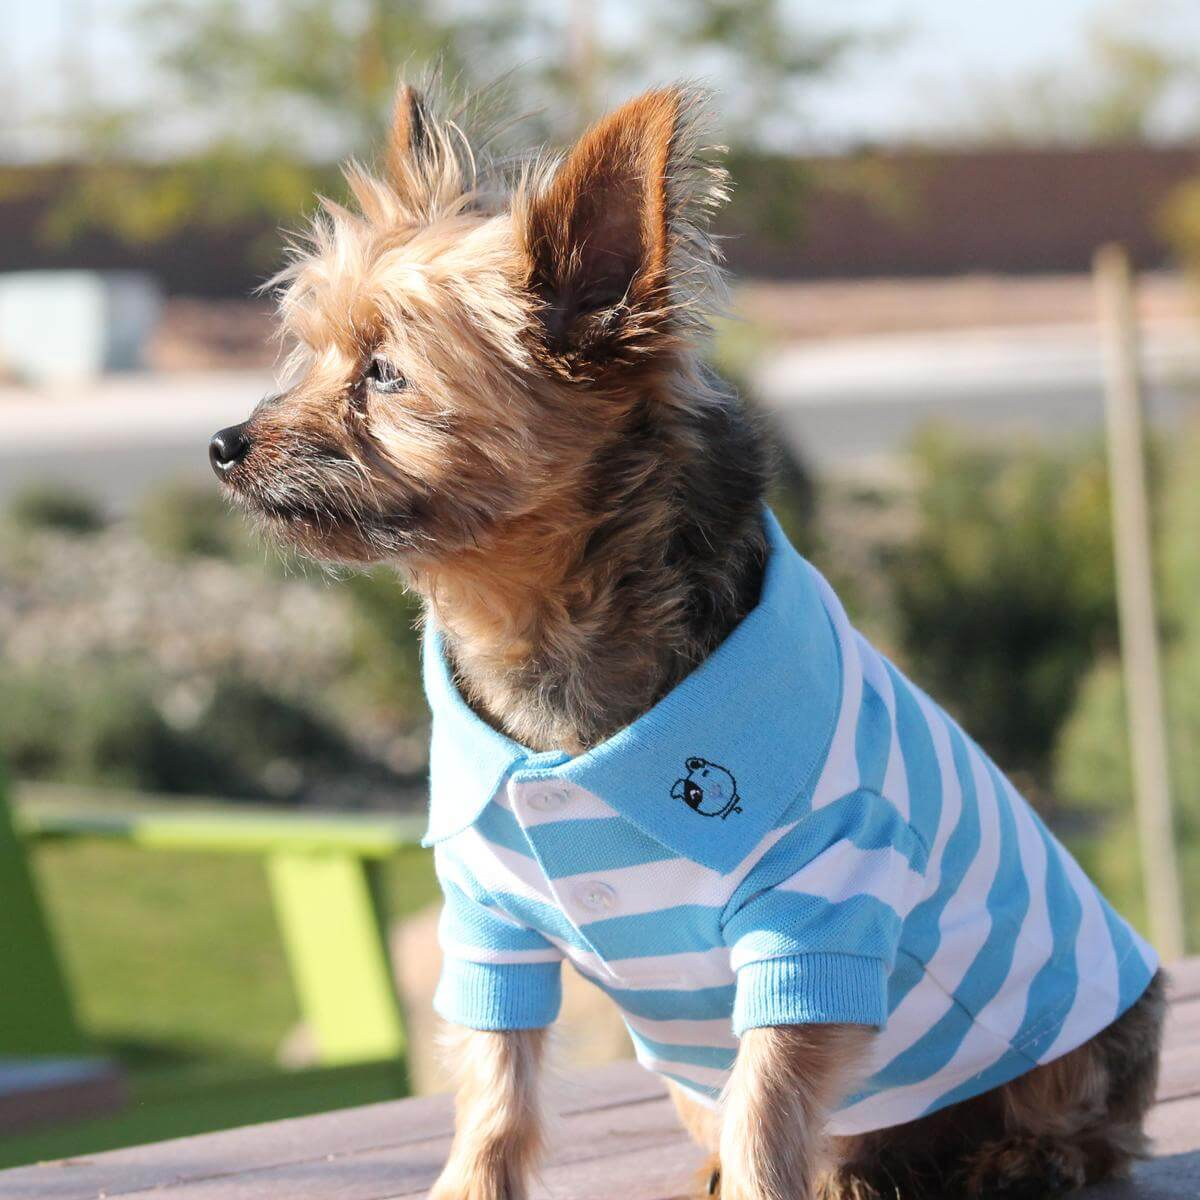 doggie design dog polo shirt - blue and white on yorkie